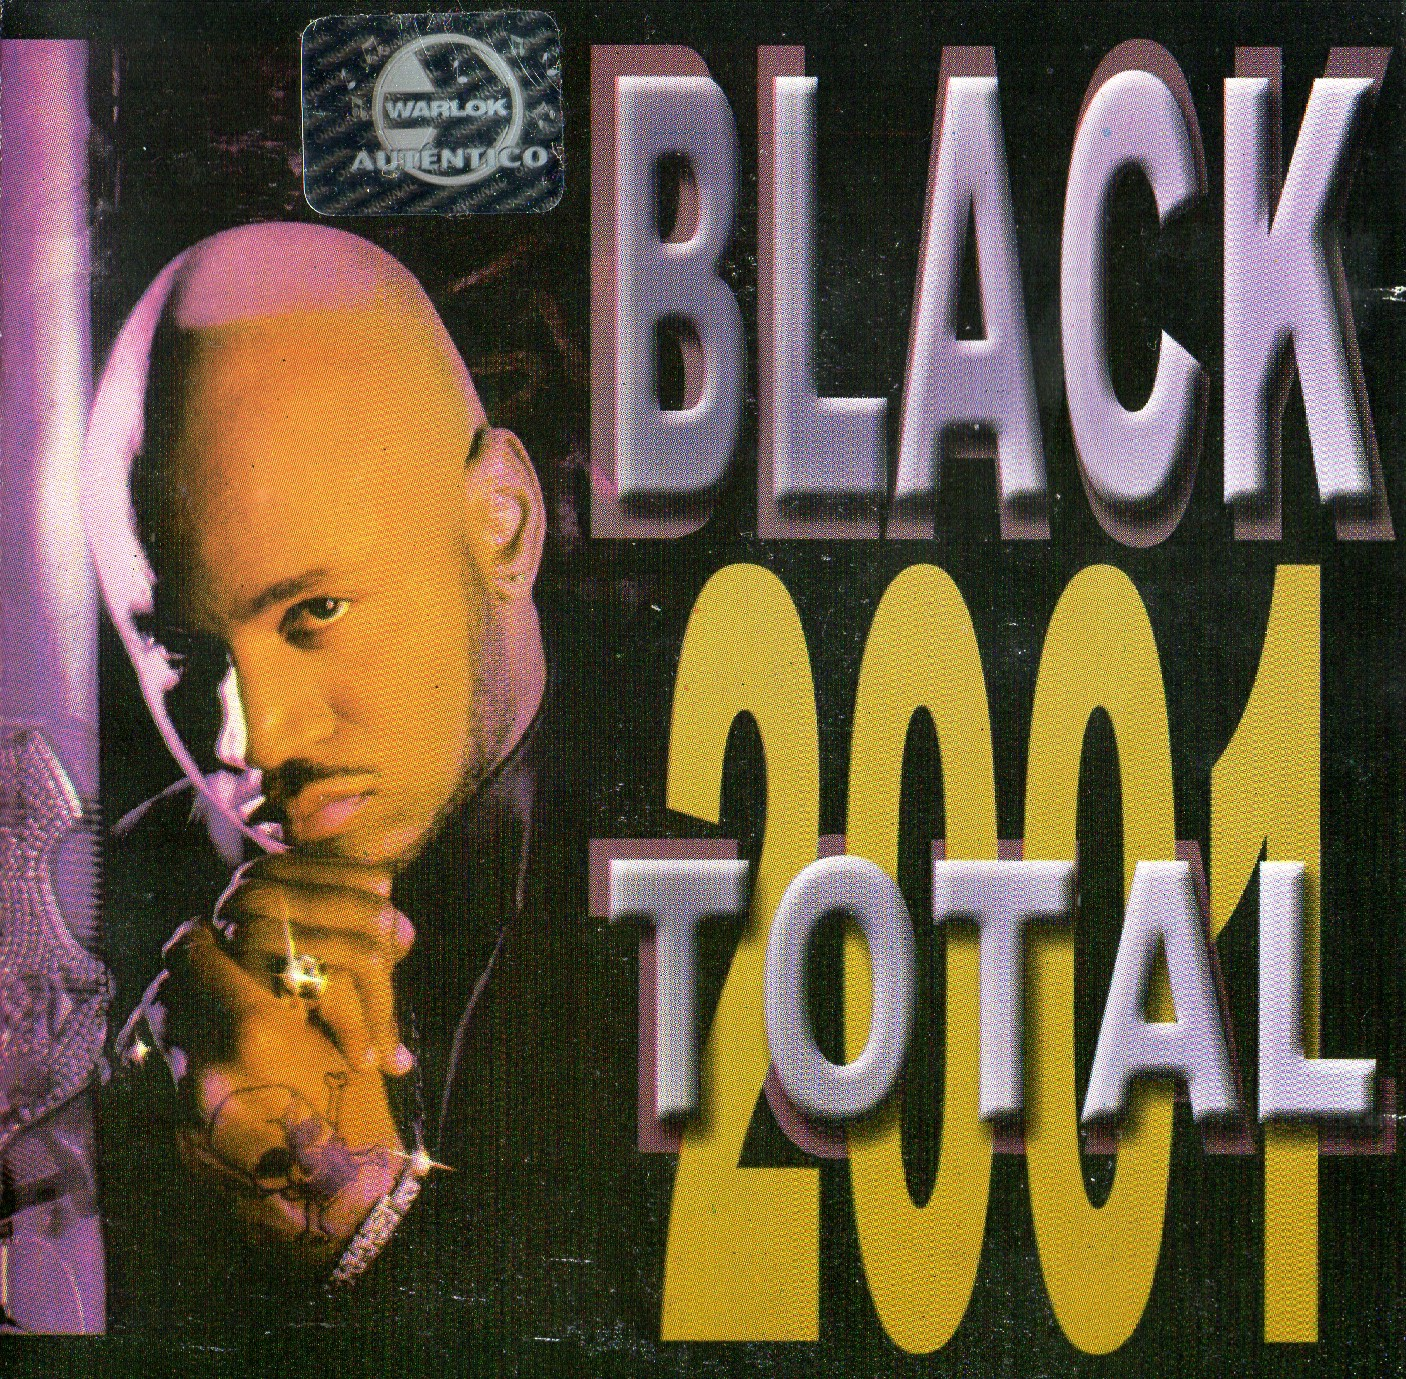 BLACL TOTAL 2001